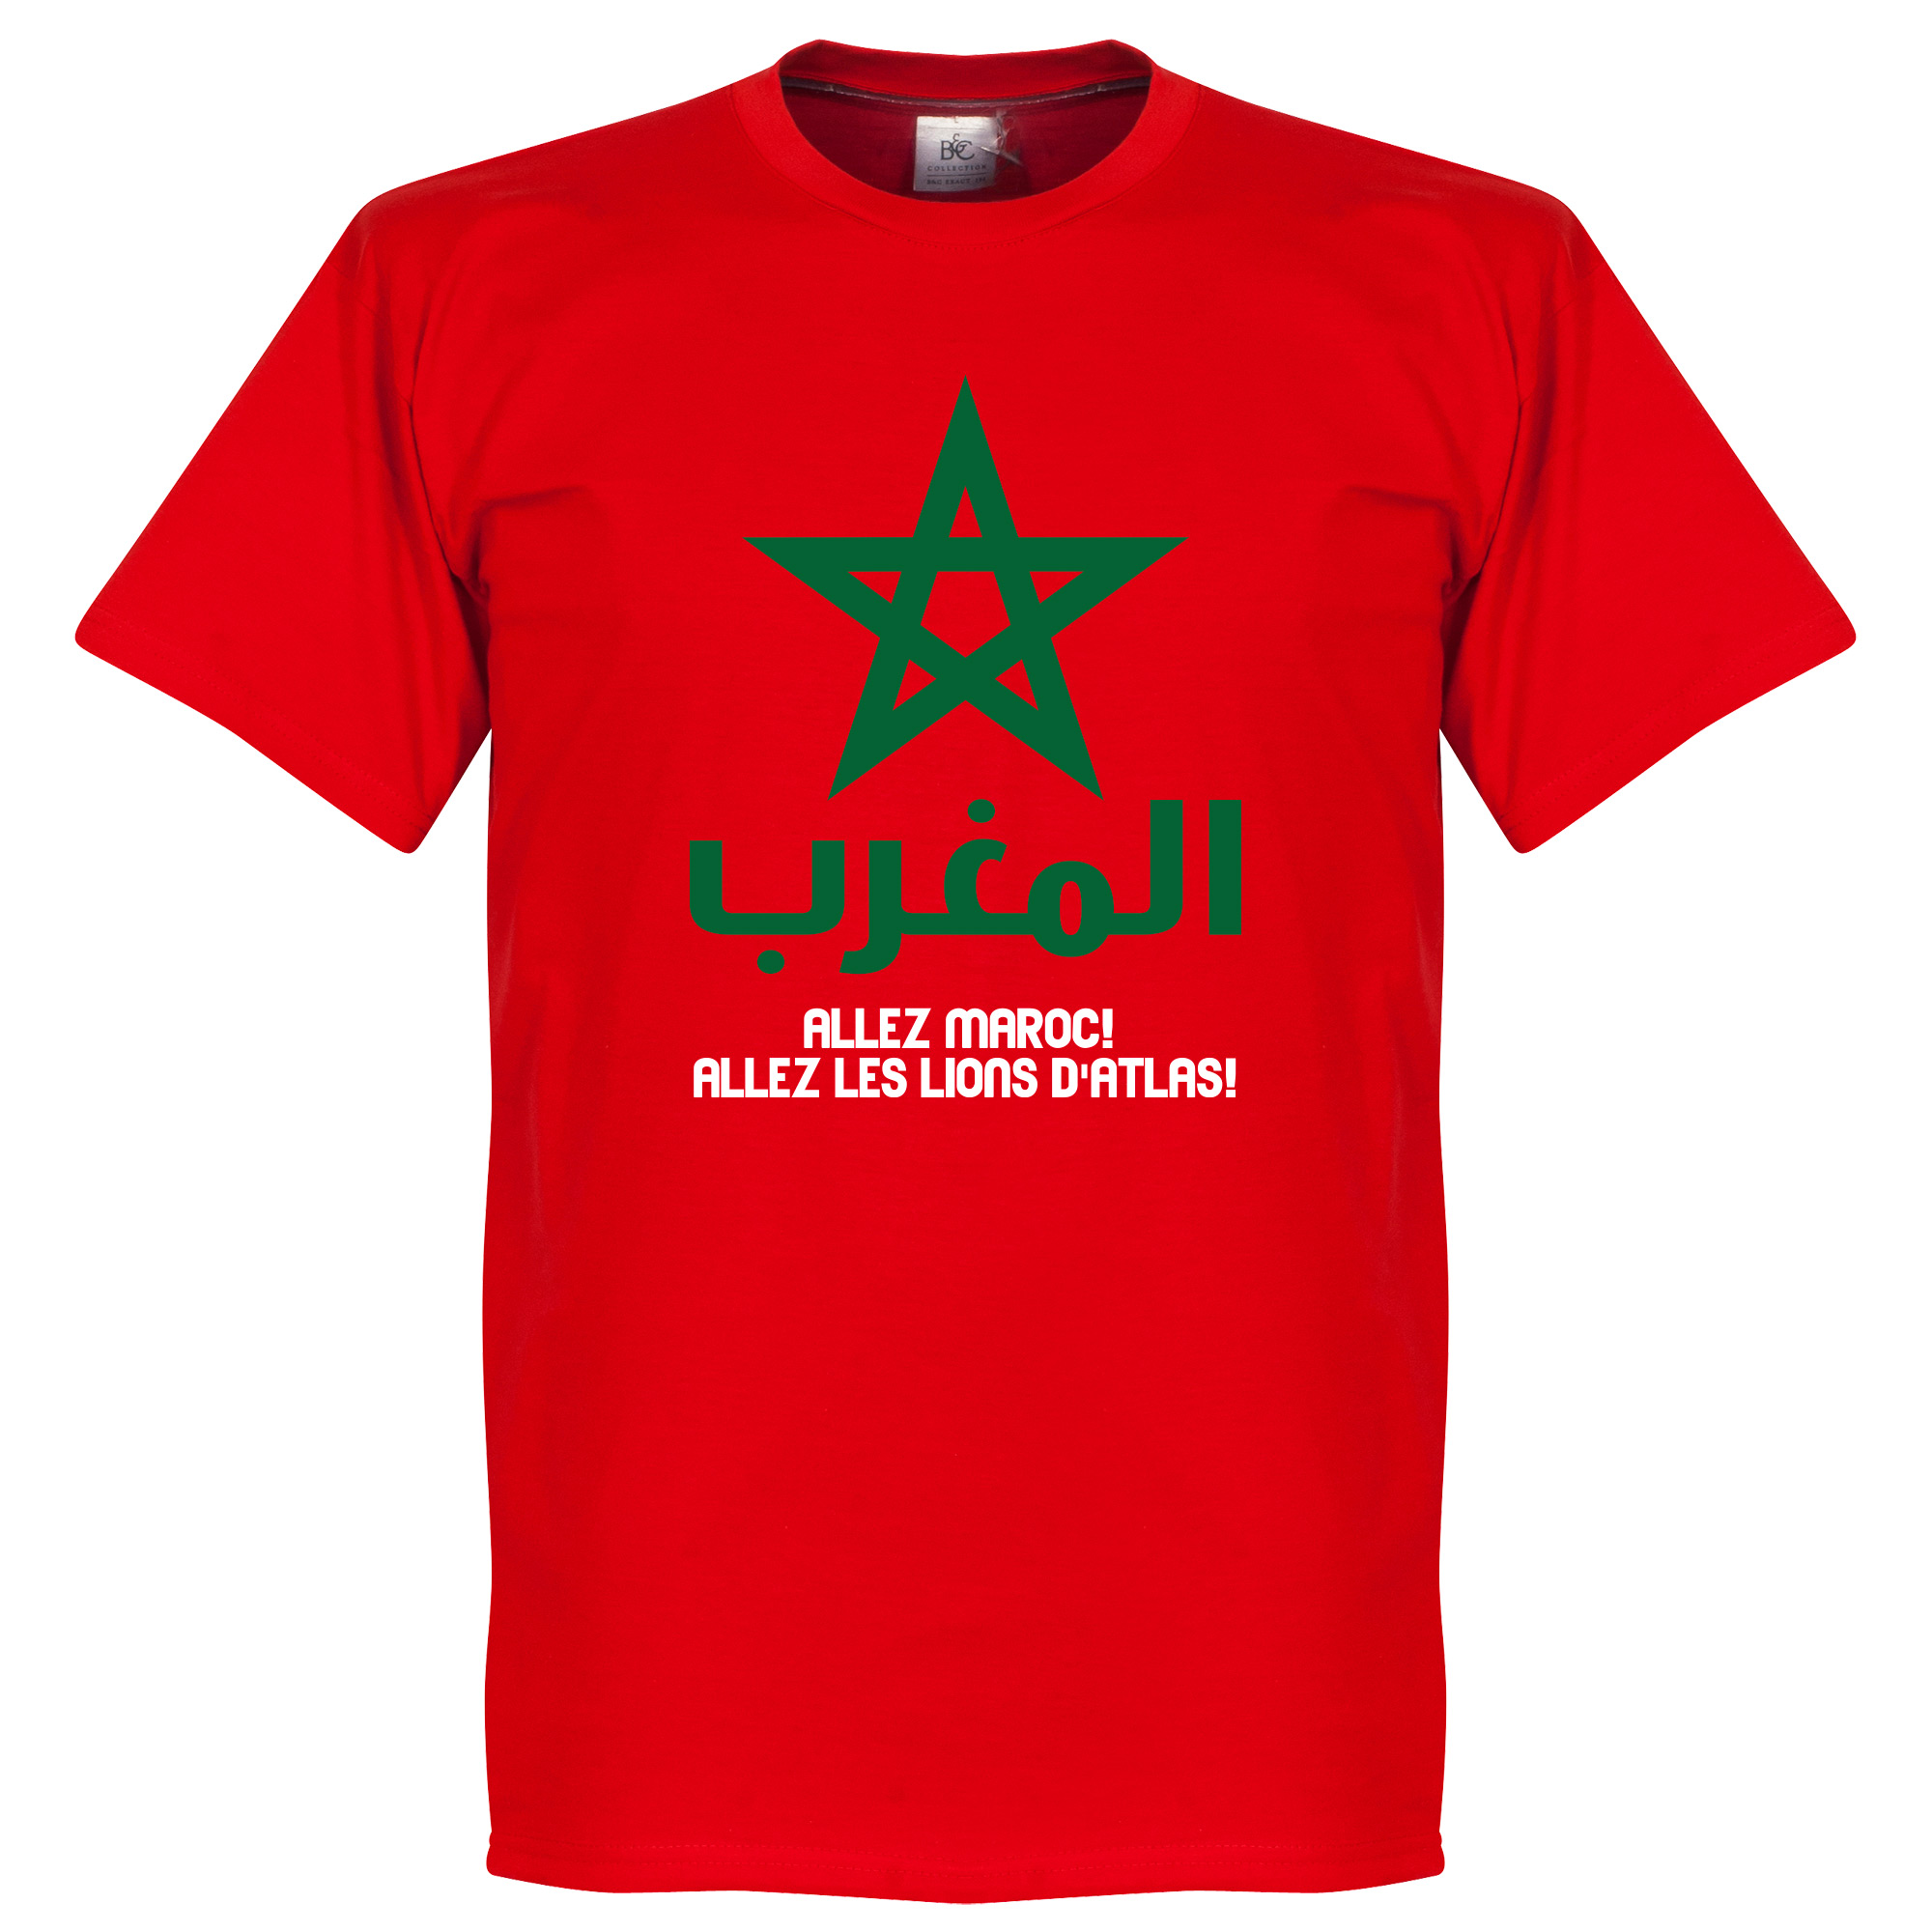 Allez Marocco Tee - Red - M